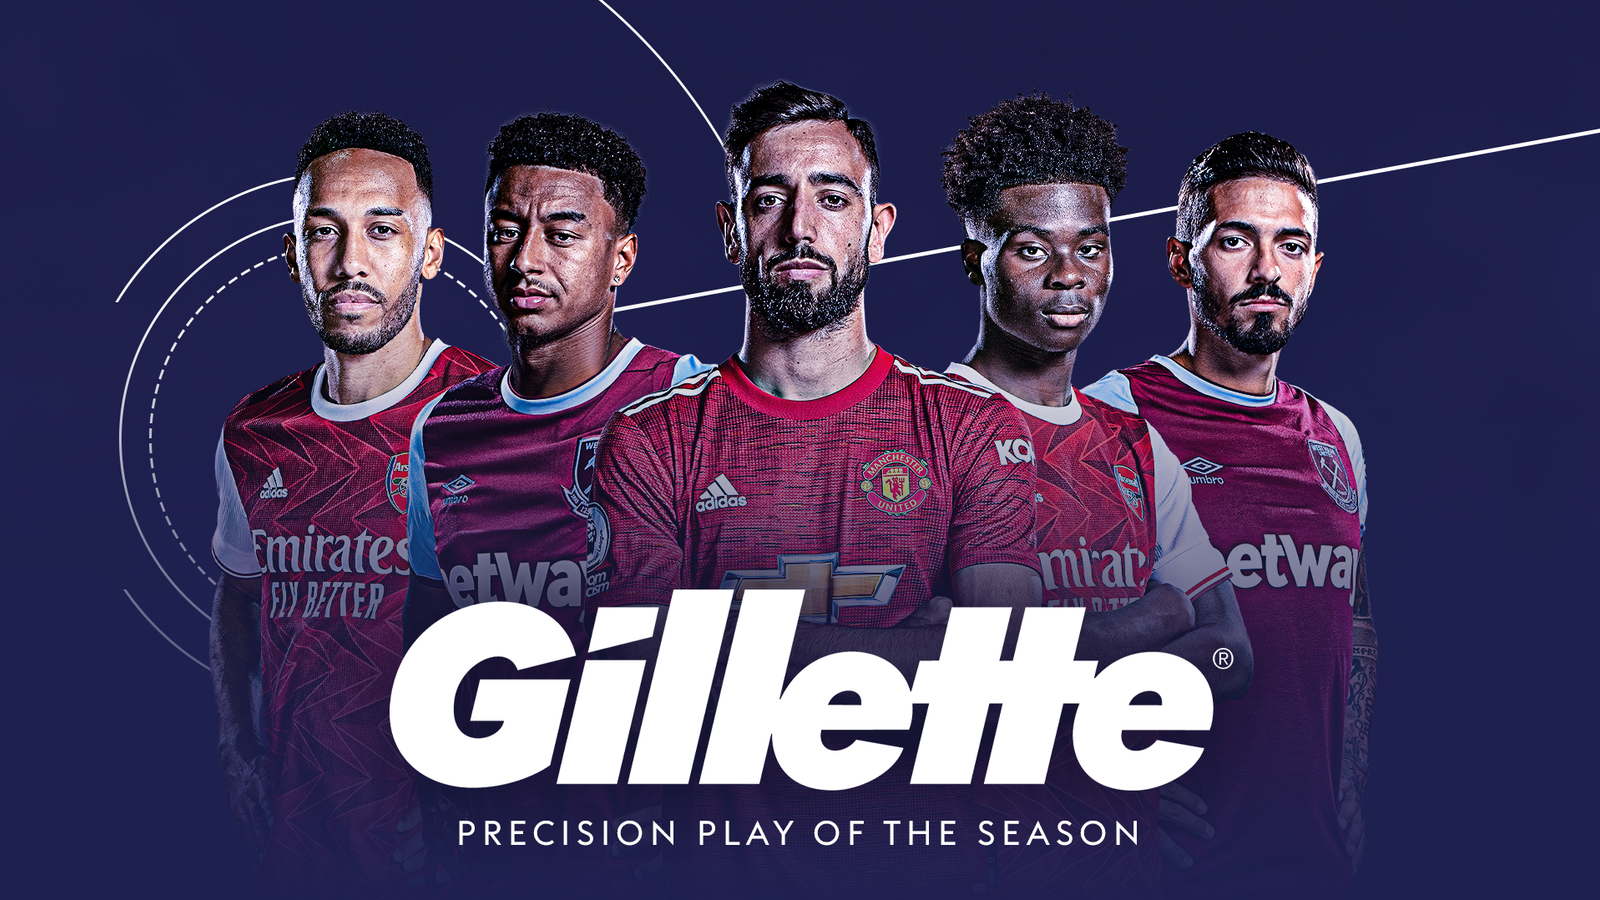 skysports-gillette-graphic_5386855.png?20210519081550